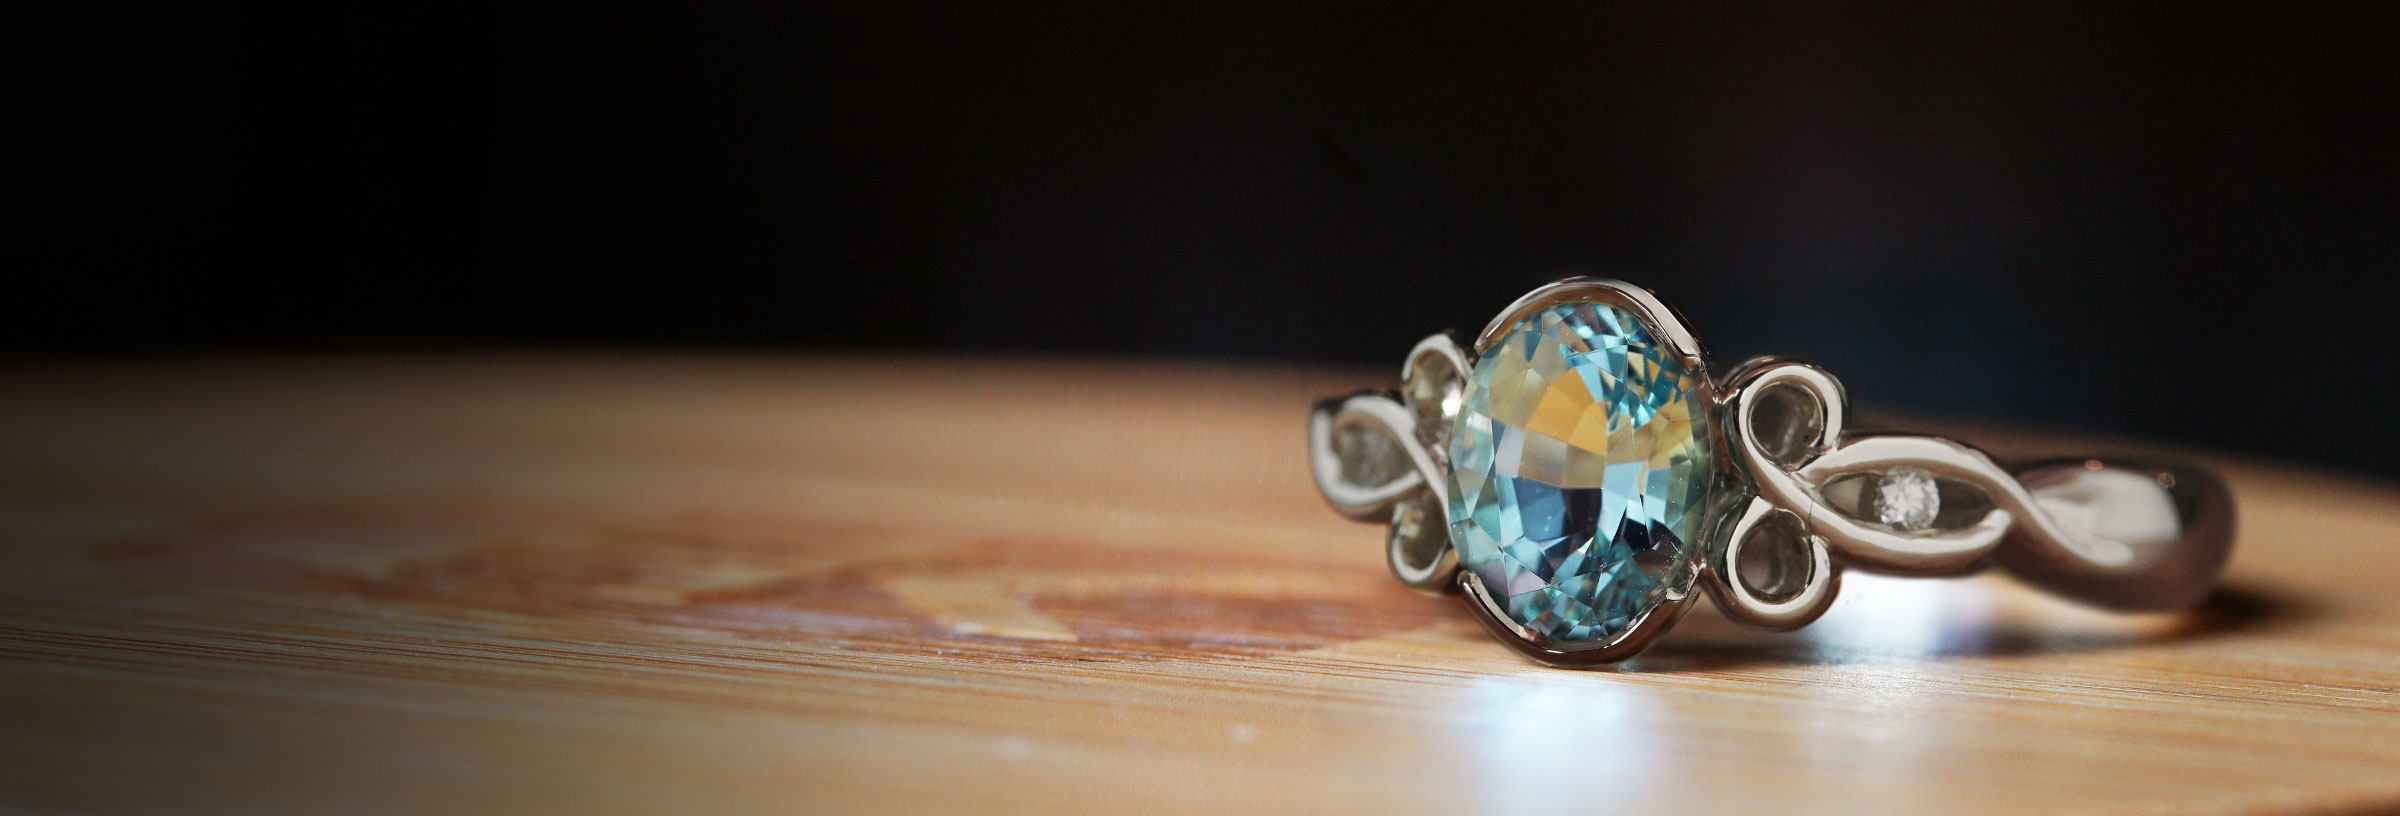 white-gold-mozambique-aquamarine-and-diamond-engagement-ring